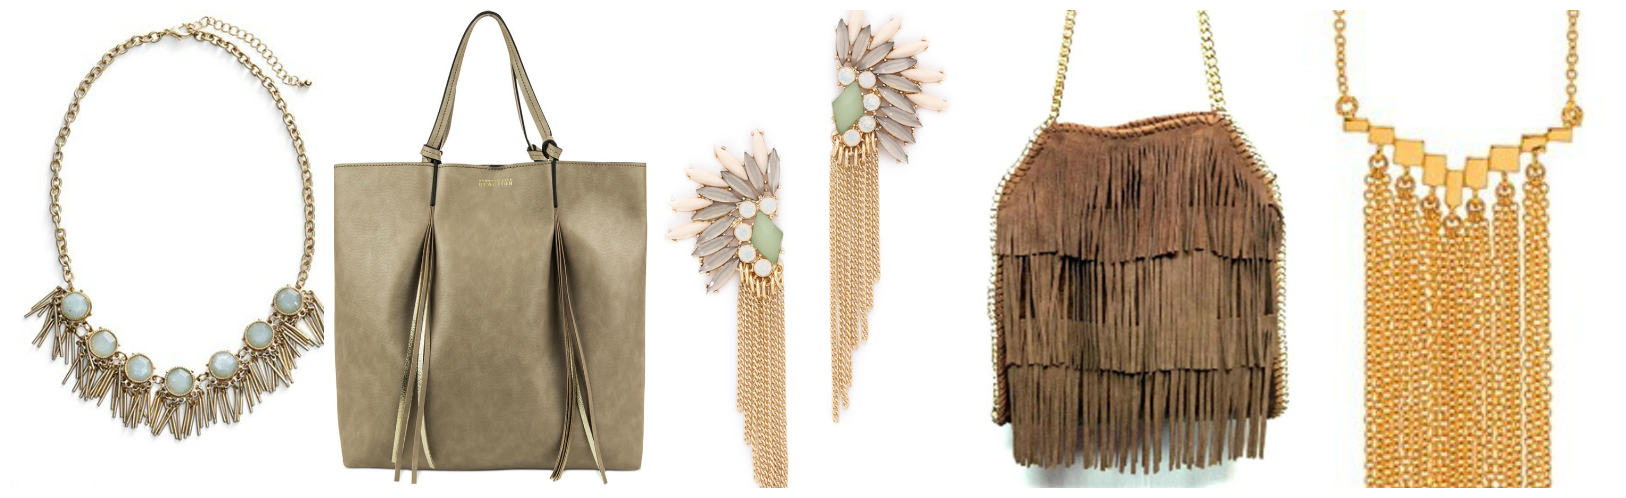 fringe accessories how to wear fringe